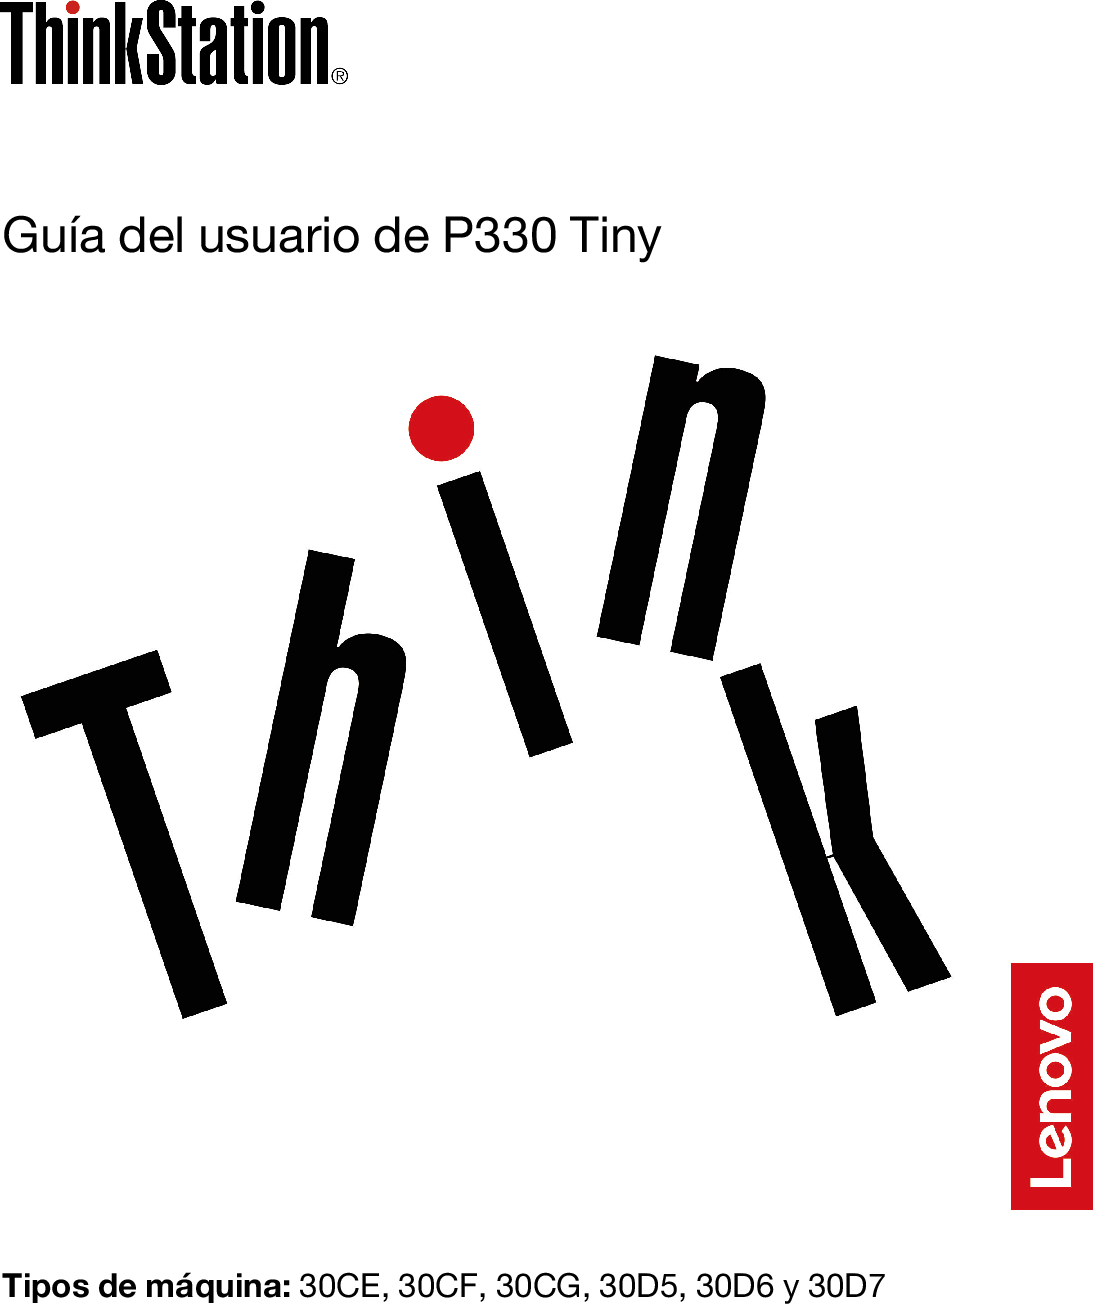 Lenovo Guía Del Usuario De P330 Tiny (Spanish) User Guide